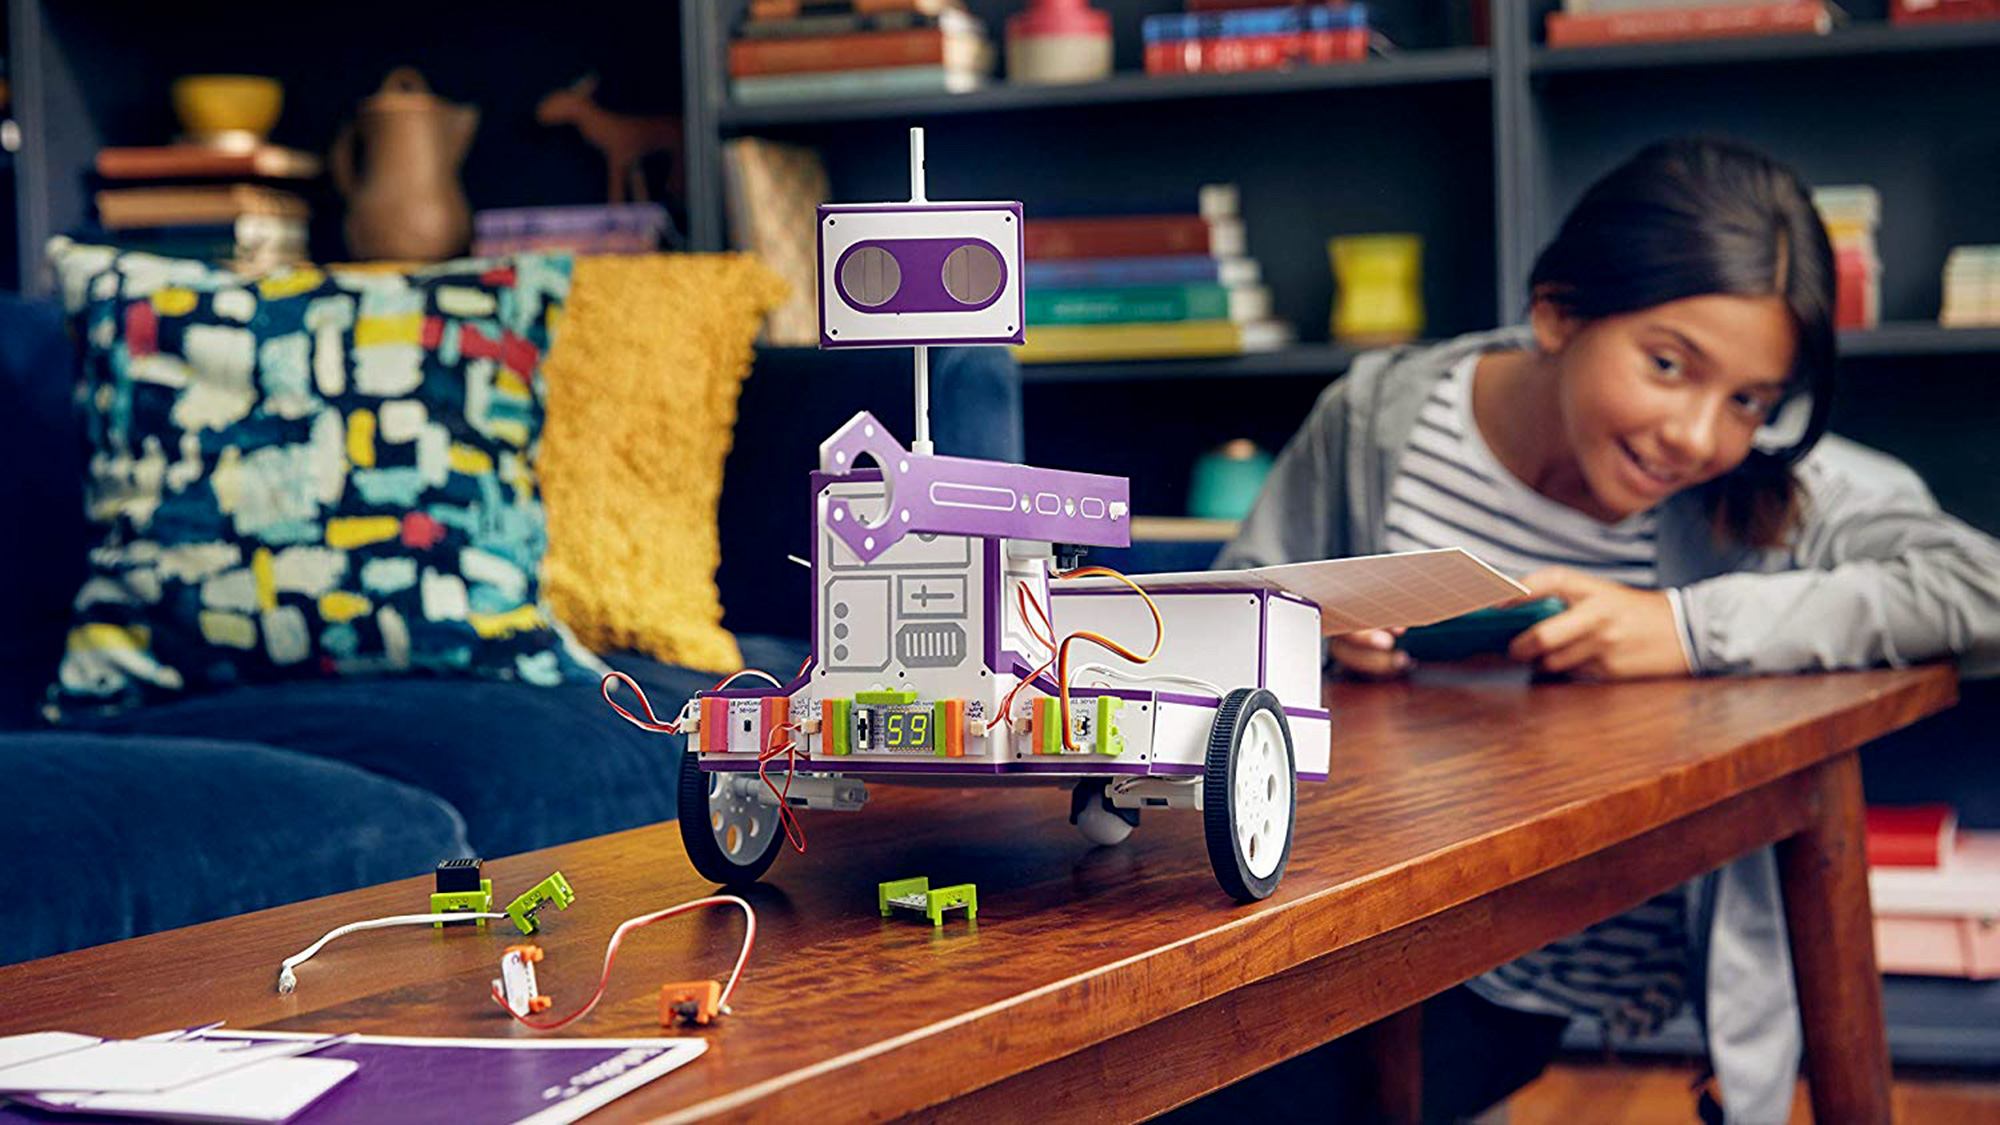 Build a Mars rover or an 'Infinity Gauntlet' with littleBits Inventor Kits, up to 40% off for Prime Day